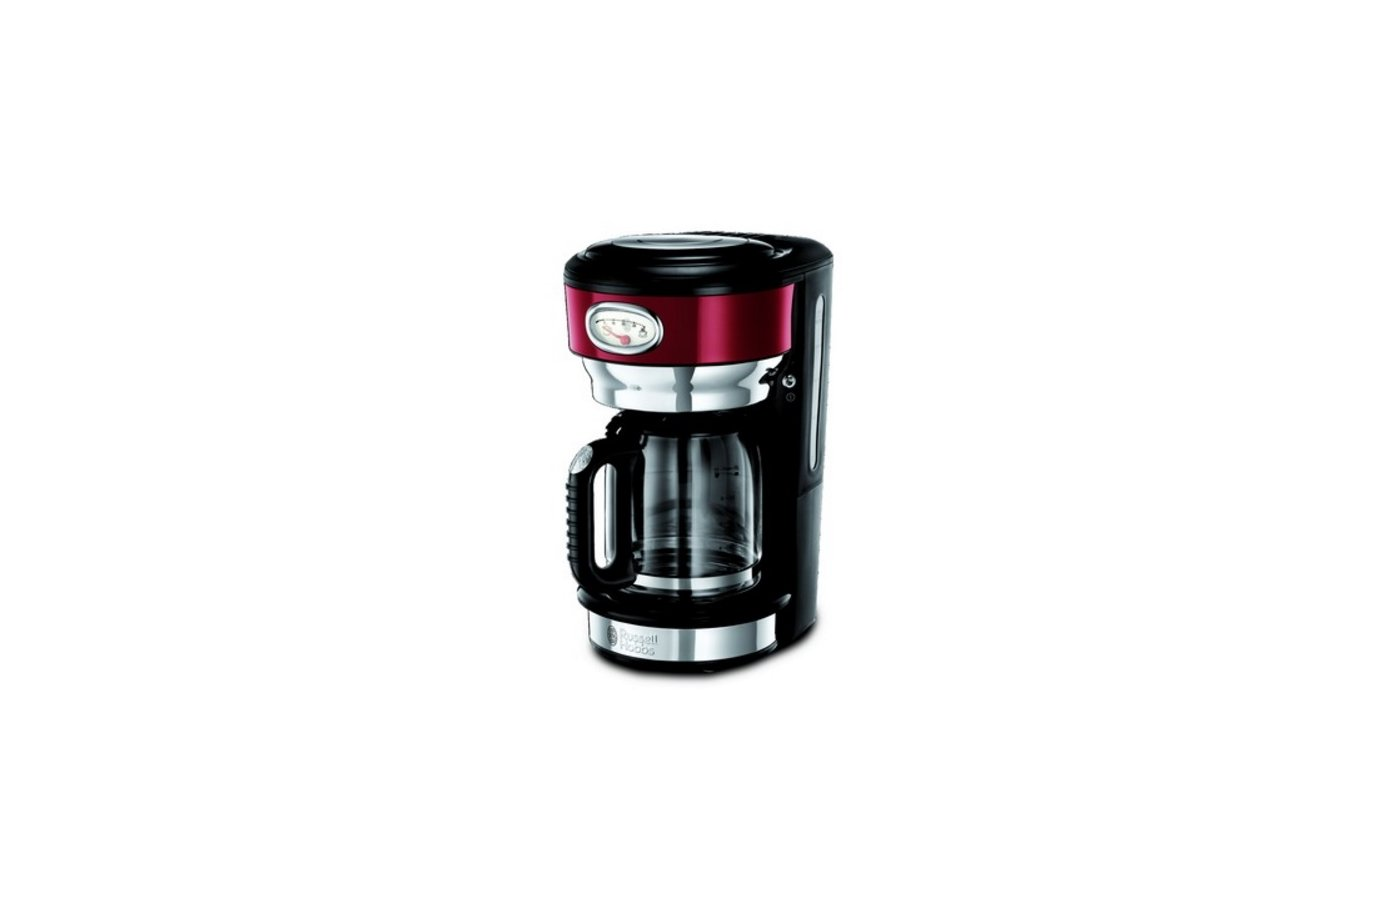 Кофеварка RUSSELL HOBBS Retro Ribbon Red 21700-56